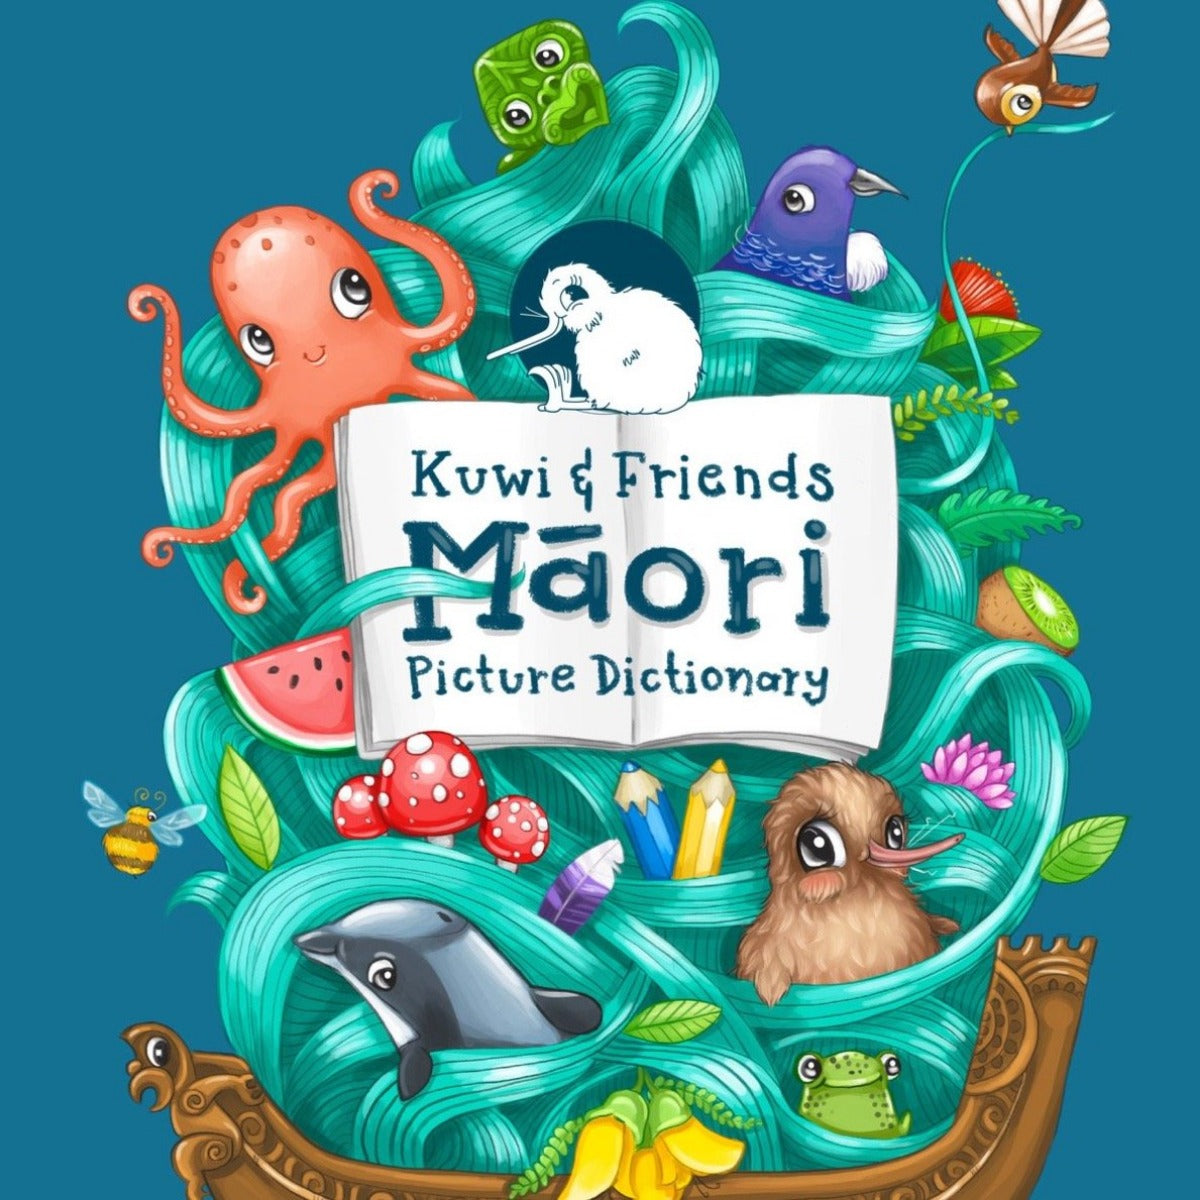 Kuwi and Friends Maori Picture Dictionary